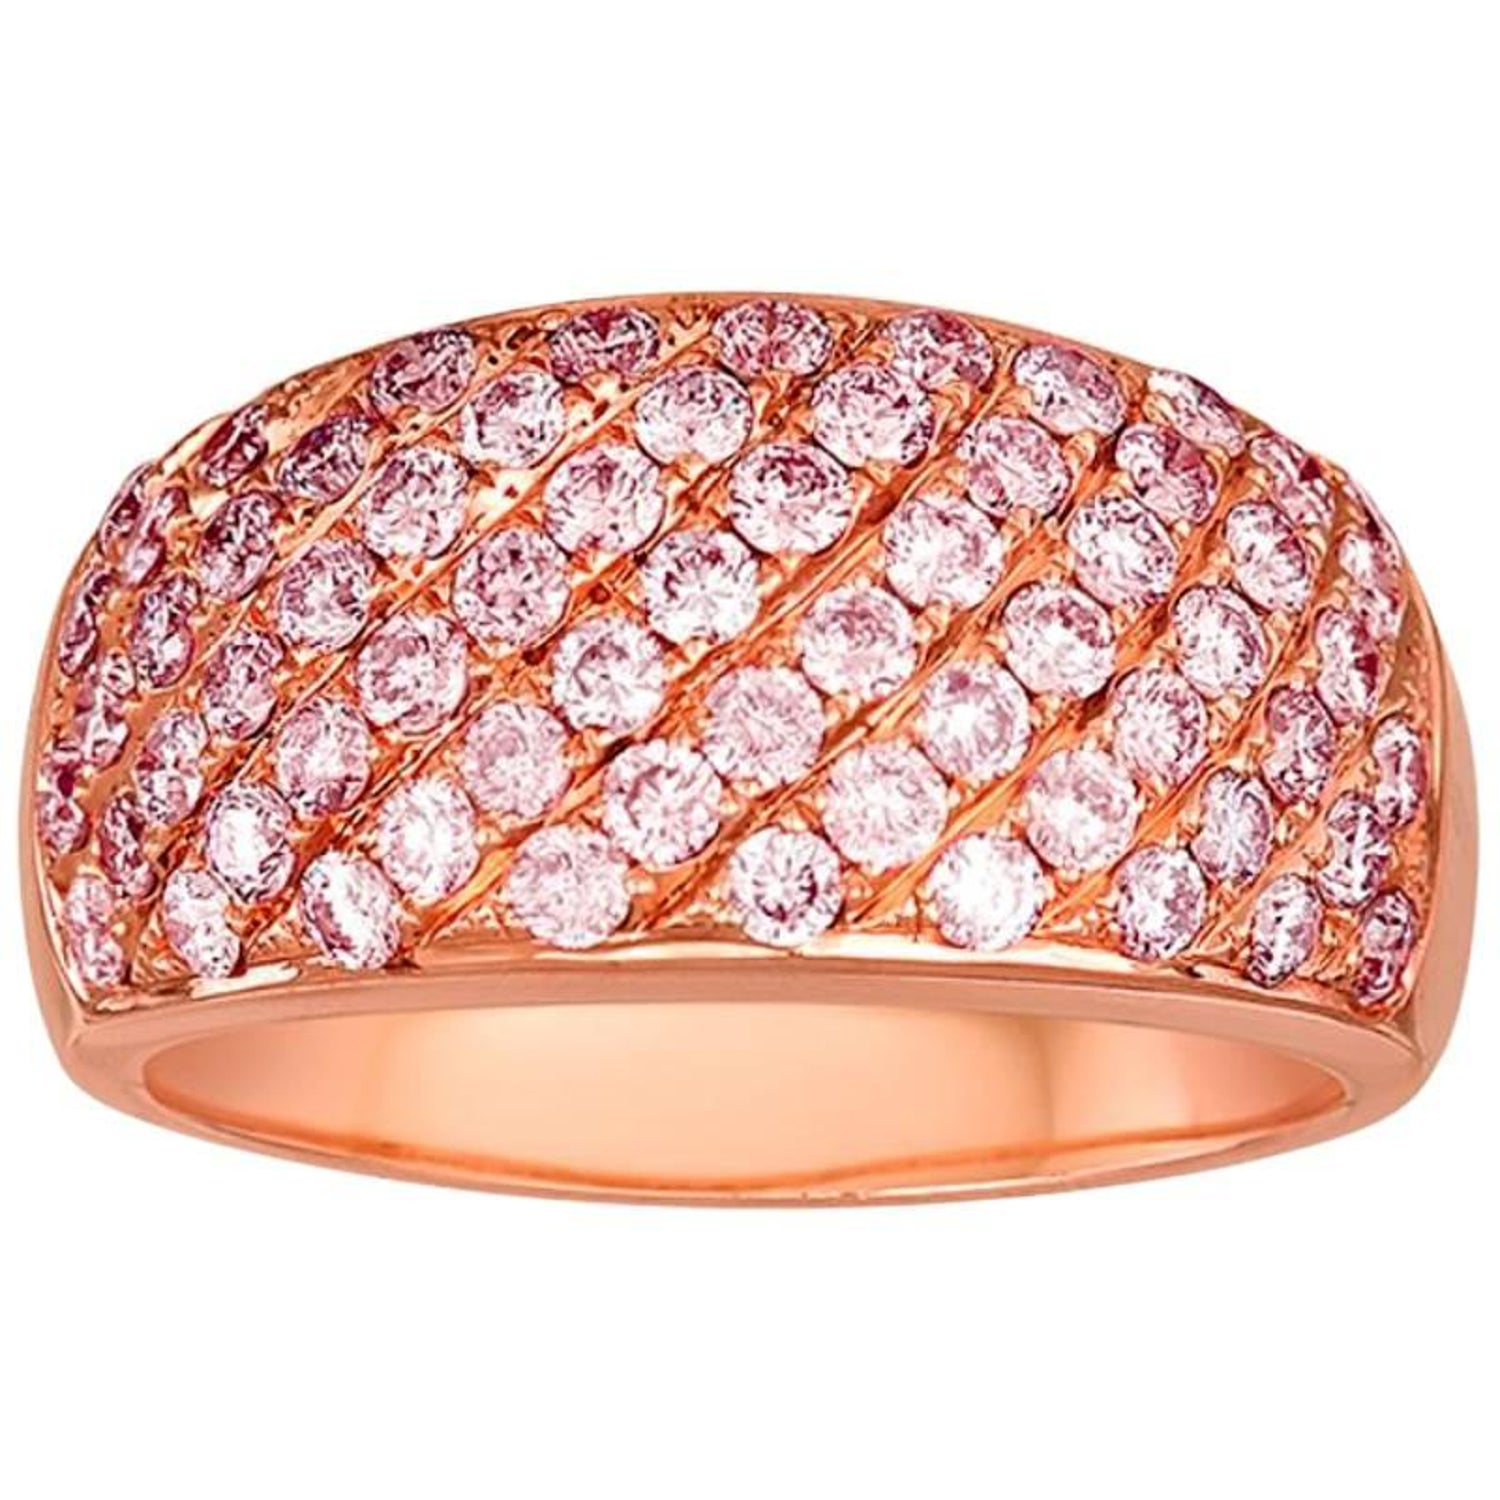 Natural Pink Diamond Gold Band Ring For Sale at 1stdibs